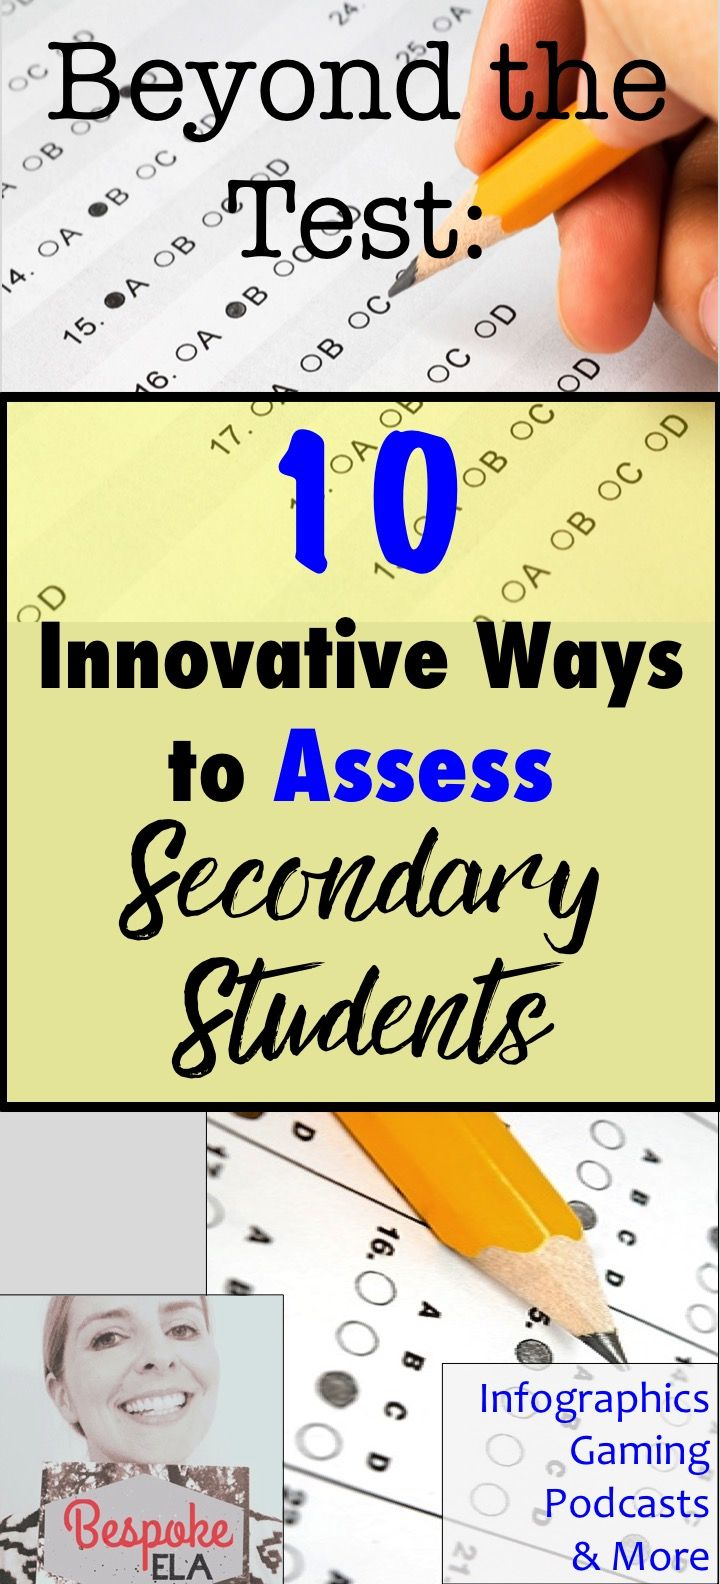 In this blog article by Bespoke ELA, you will find 10 innovative ways to assess secondary students across all content areas! If you are tired of traditional tests, standardized testing, presentations, and stereotypical discussions, than this blog can give you some fresh new ideas to diversify your formative and summative assessment strategies. by Bespoke ELA